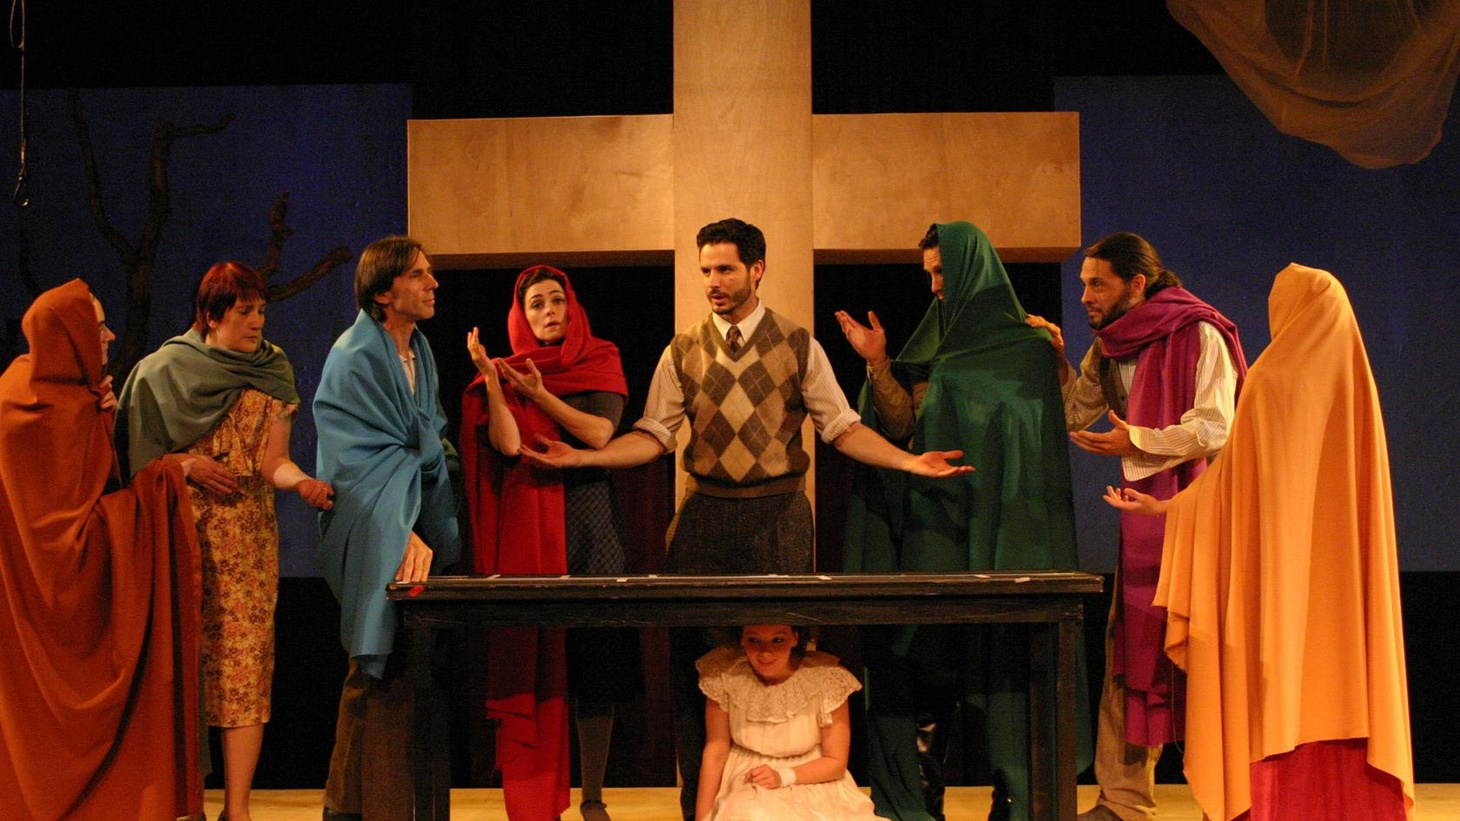 The Evidence Room latest production at the Odyssey Theatre features three different communities who all put up their own production of a passion play.